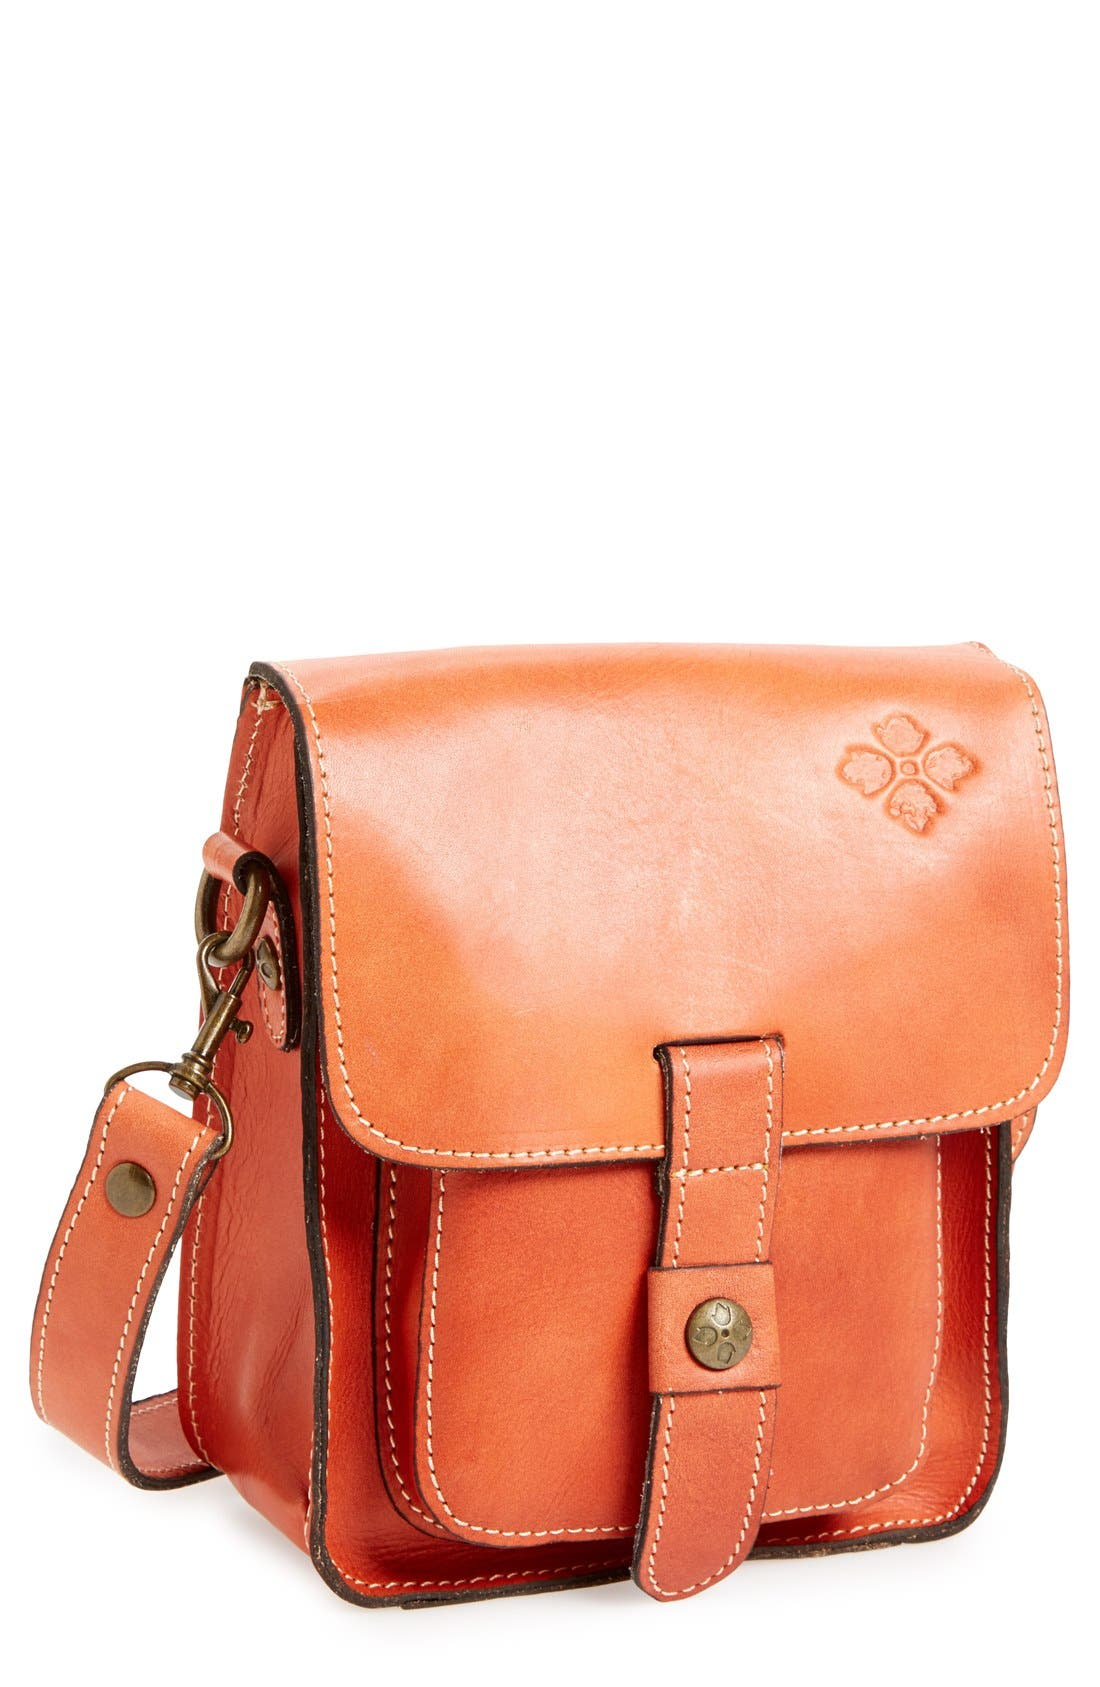 Alternate Image 1 Selected - Patricia Nash 'Lari' Leather Crossbody Bag